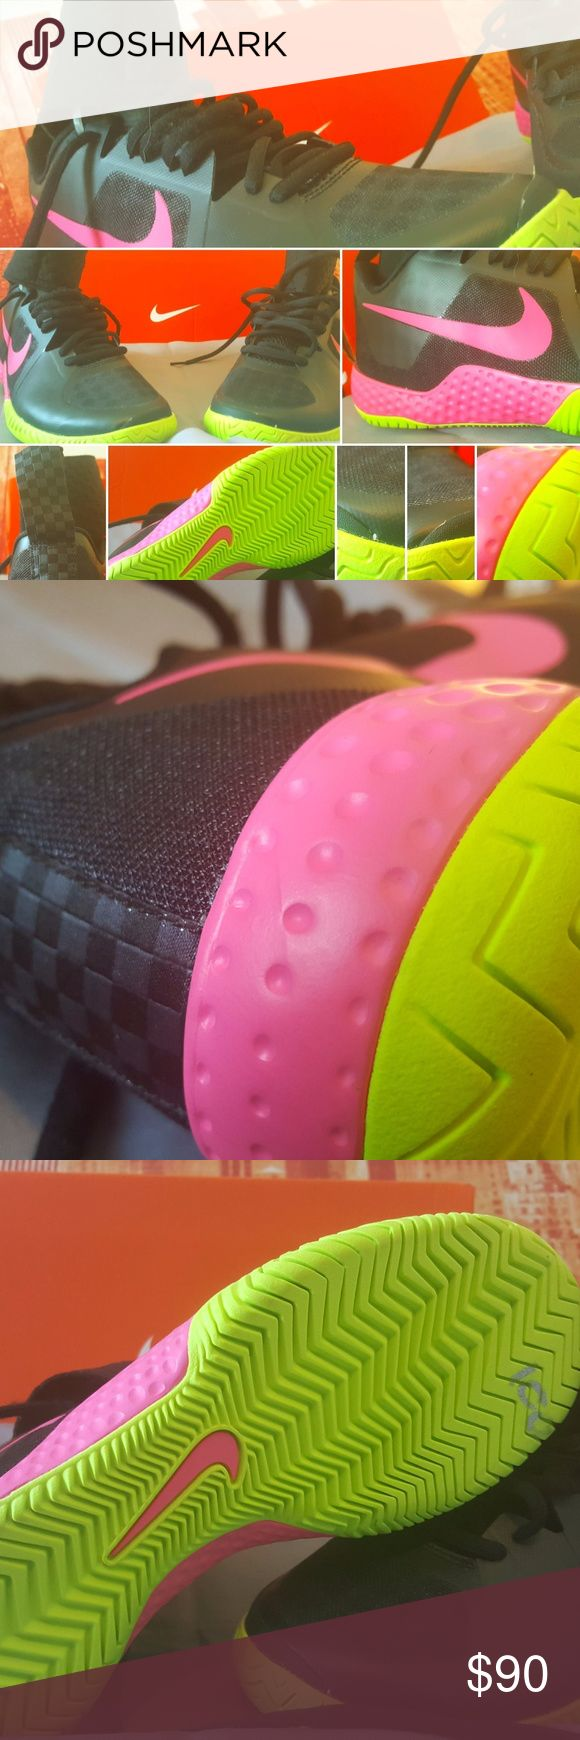 Serena Williams NIKE HYPER FLARE WOMENS PINK BLACK Nike Serena Williams Flare Tennis Shoes Size 6.5 (810964-067) Black/Pink/Volt New Without Box Nike Shoes Sneakers